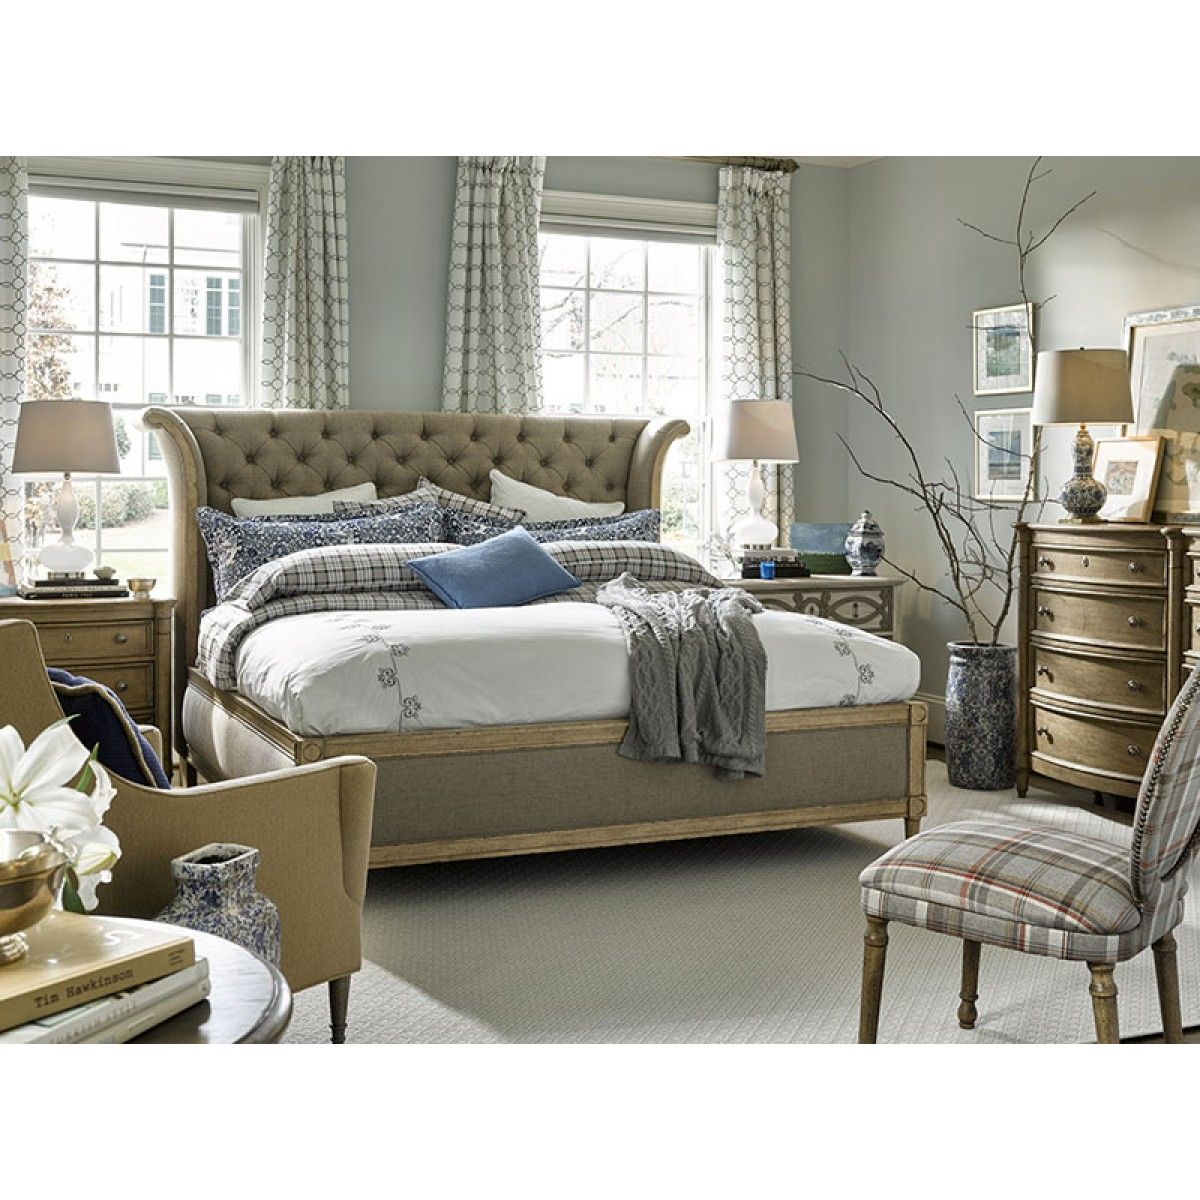 houzz bedroom furniture. Campton Grove, Grove Daventry Queen Upholstered Bed In Brown, Dining Room Table Sets, Bedroom Furniture, Curio Cabinets And Solid Wood Furniture Houzz